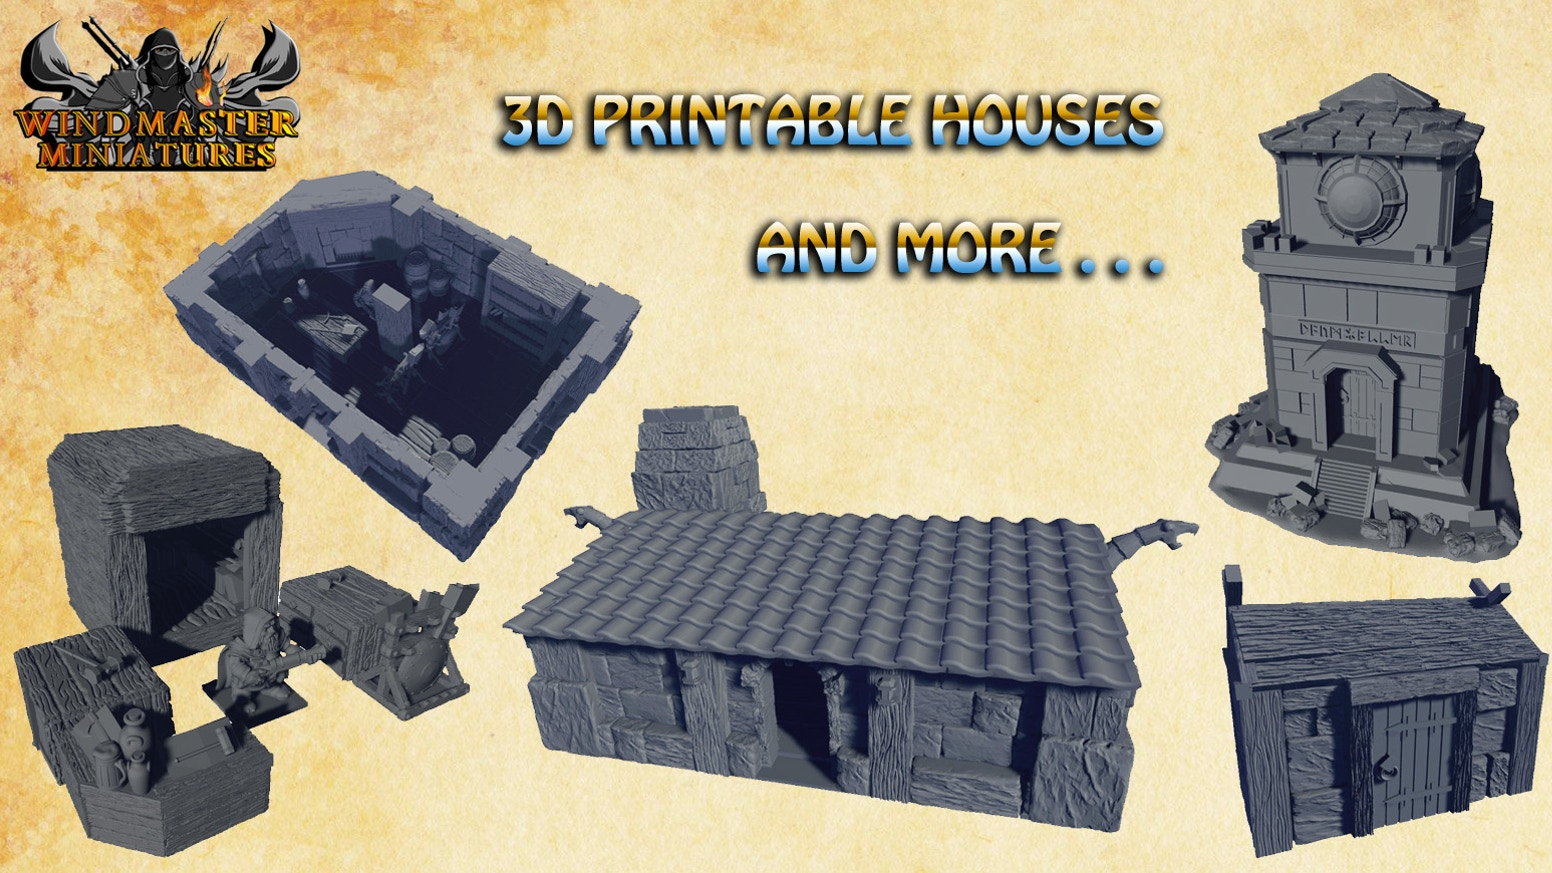 3D Printable Houses and more... by Windmaster Miniatures — Kickstarter